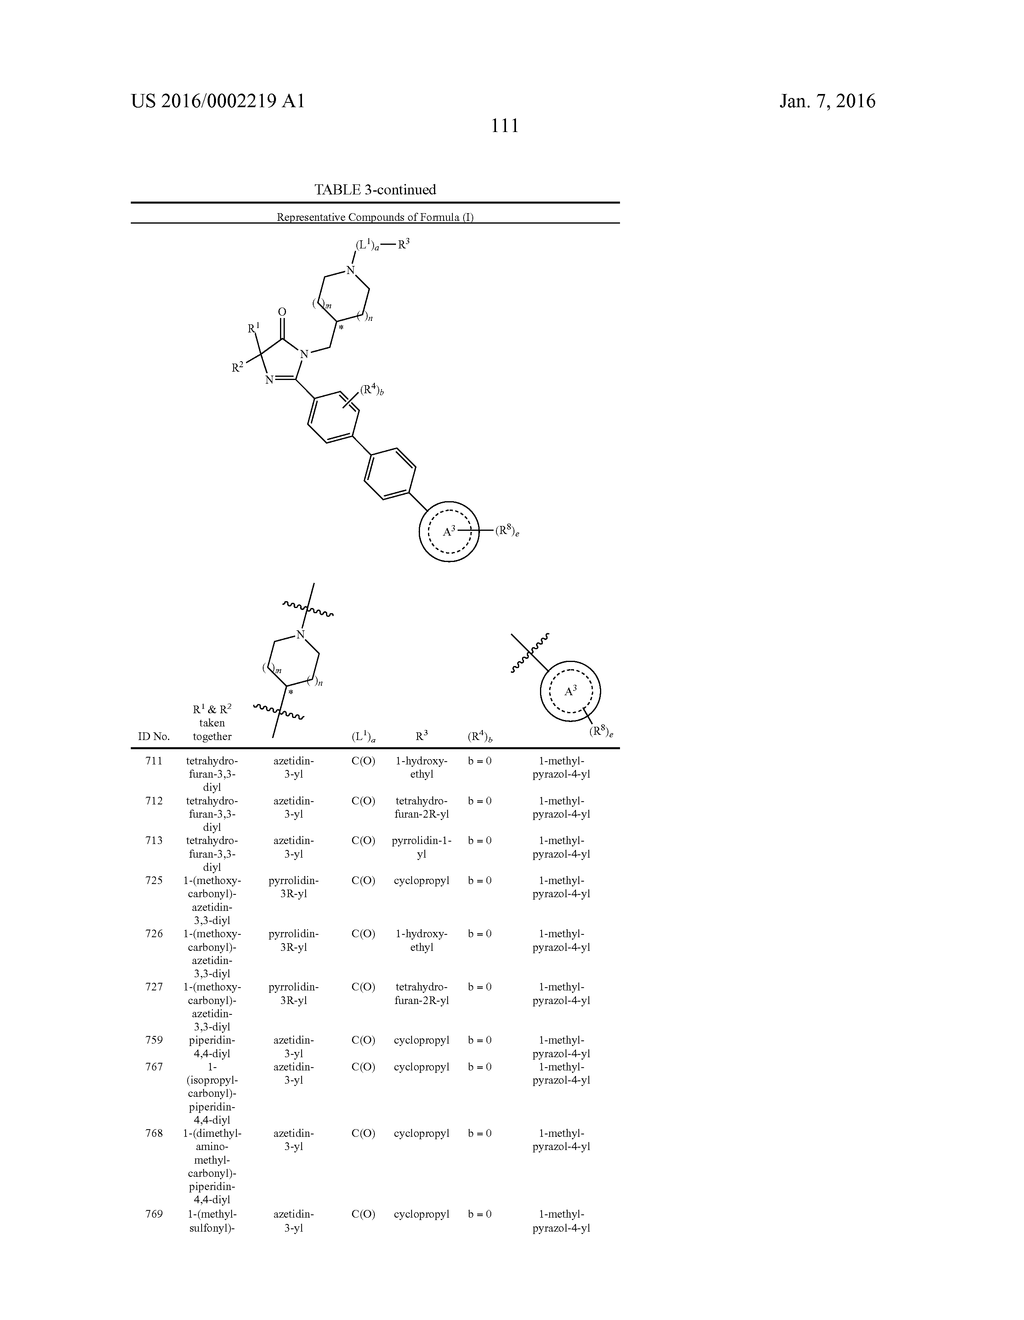 IMIDAZOLIN-5-ONE DERIVATIVE USEFUL AS FASN INHIBITORS FOR THE TREATMENT OF     CANCER - diagram, schematic, and image 112